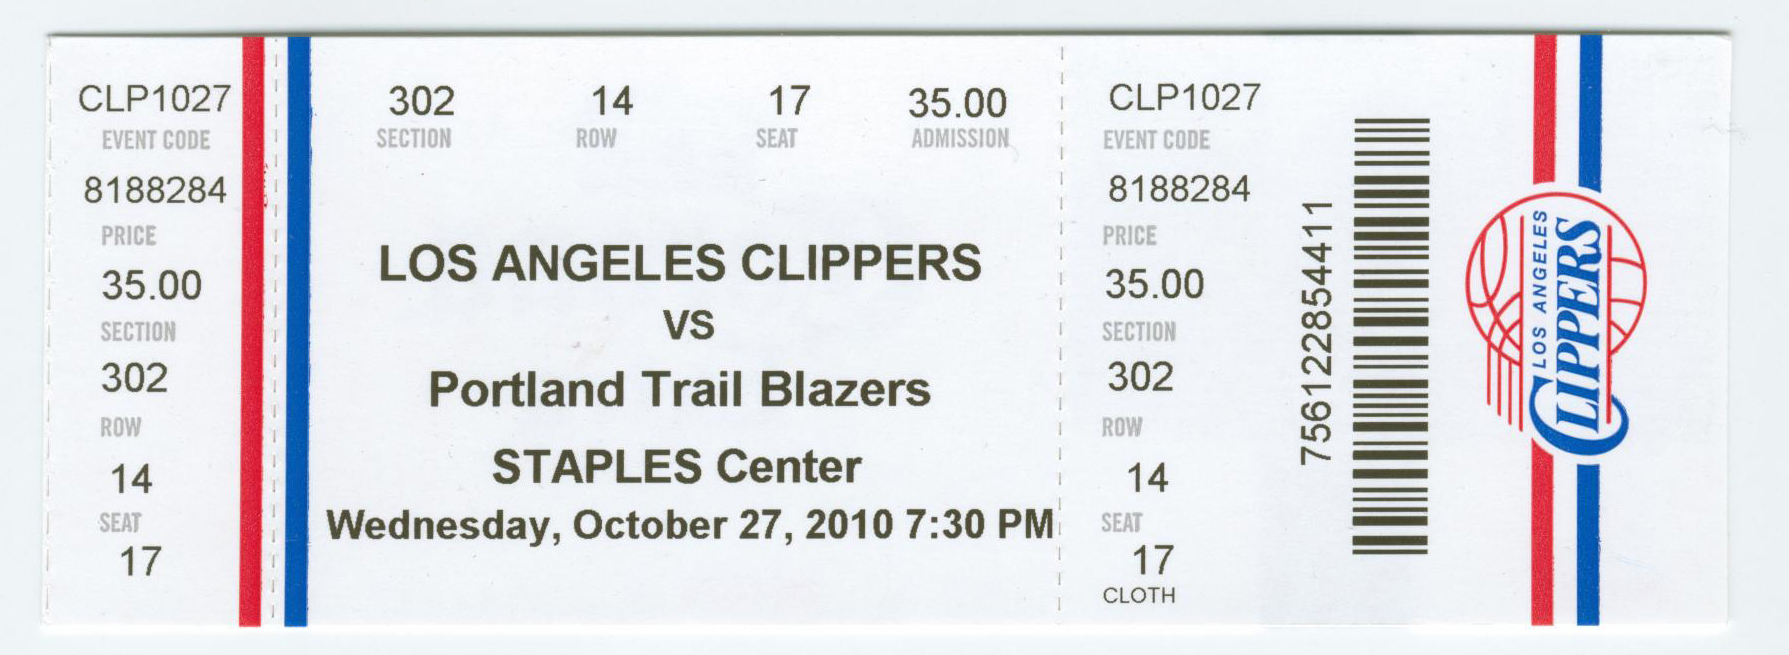 Ticket Clippers la Clippers Tickets